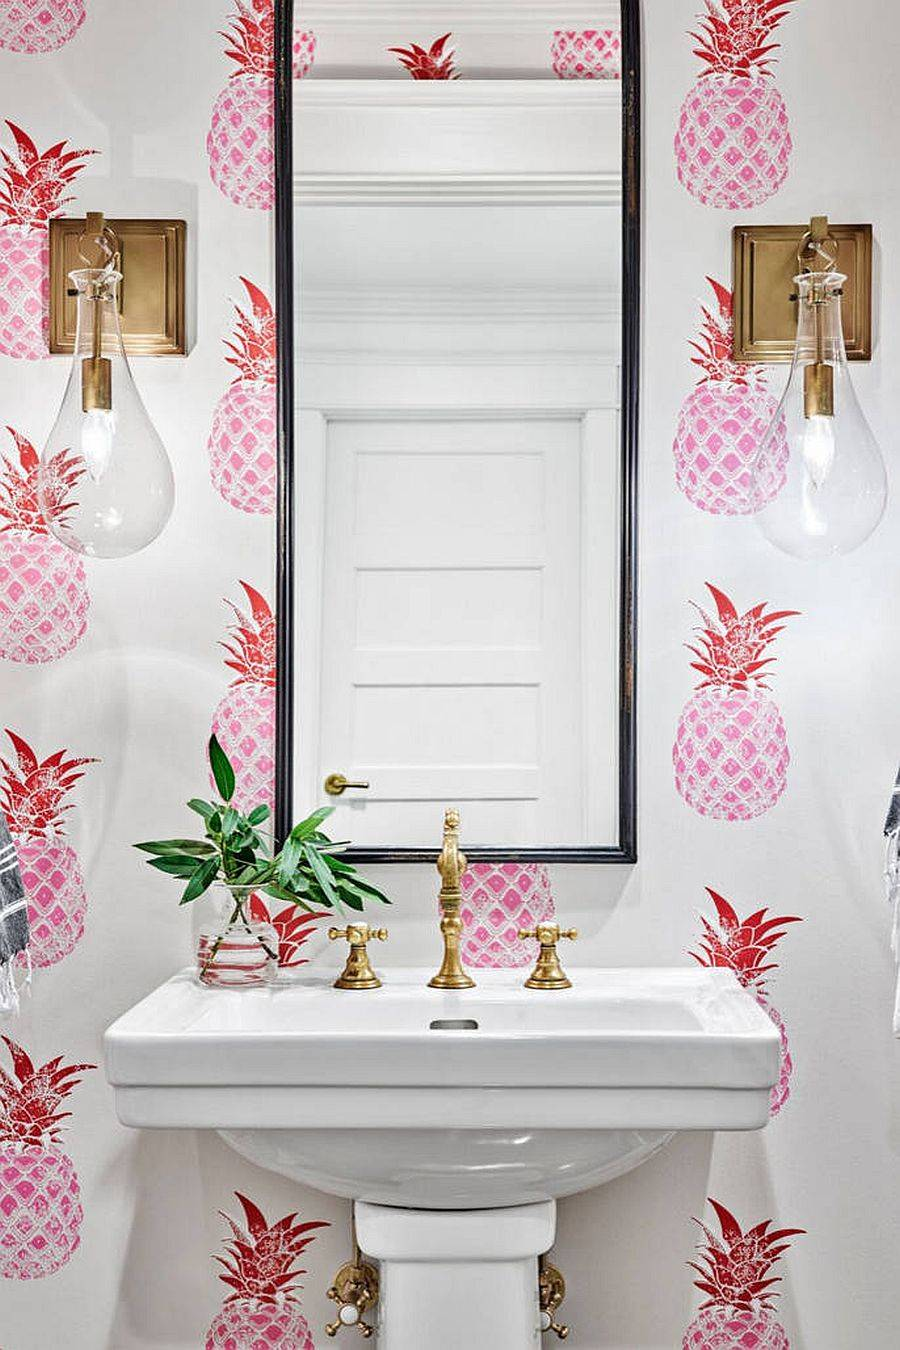 Cheerful-and-playful-wallpaper-with-pineapple-prints-in-pink-for-the-small-powder-room-80003